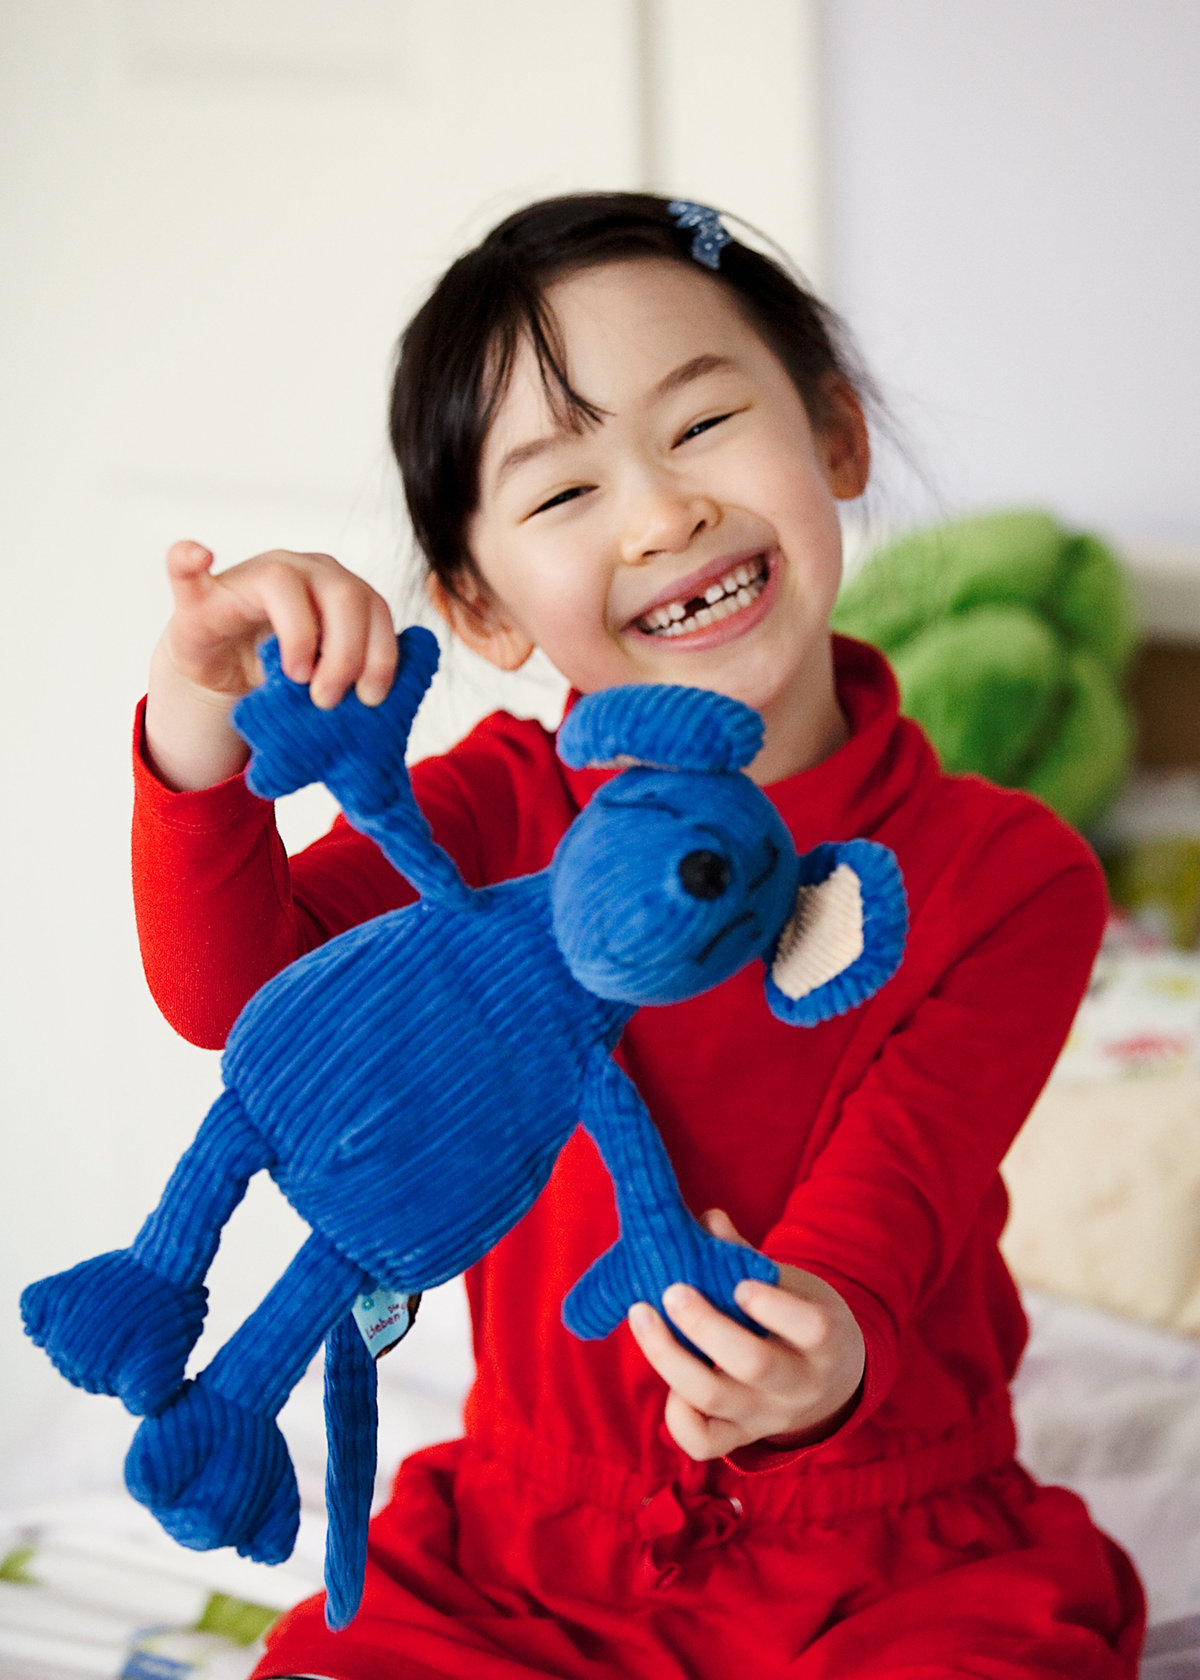 A girl is captured at home with her favorite stuffed animal  by CT family photographer Karissa Van Tassel